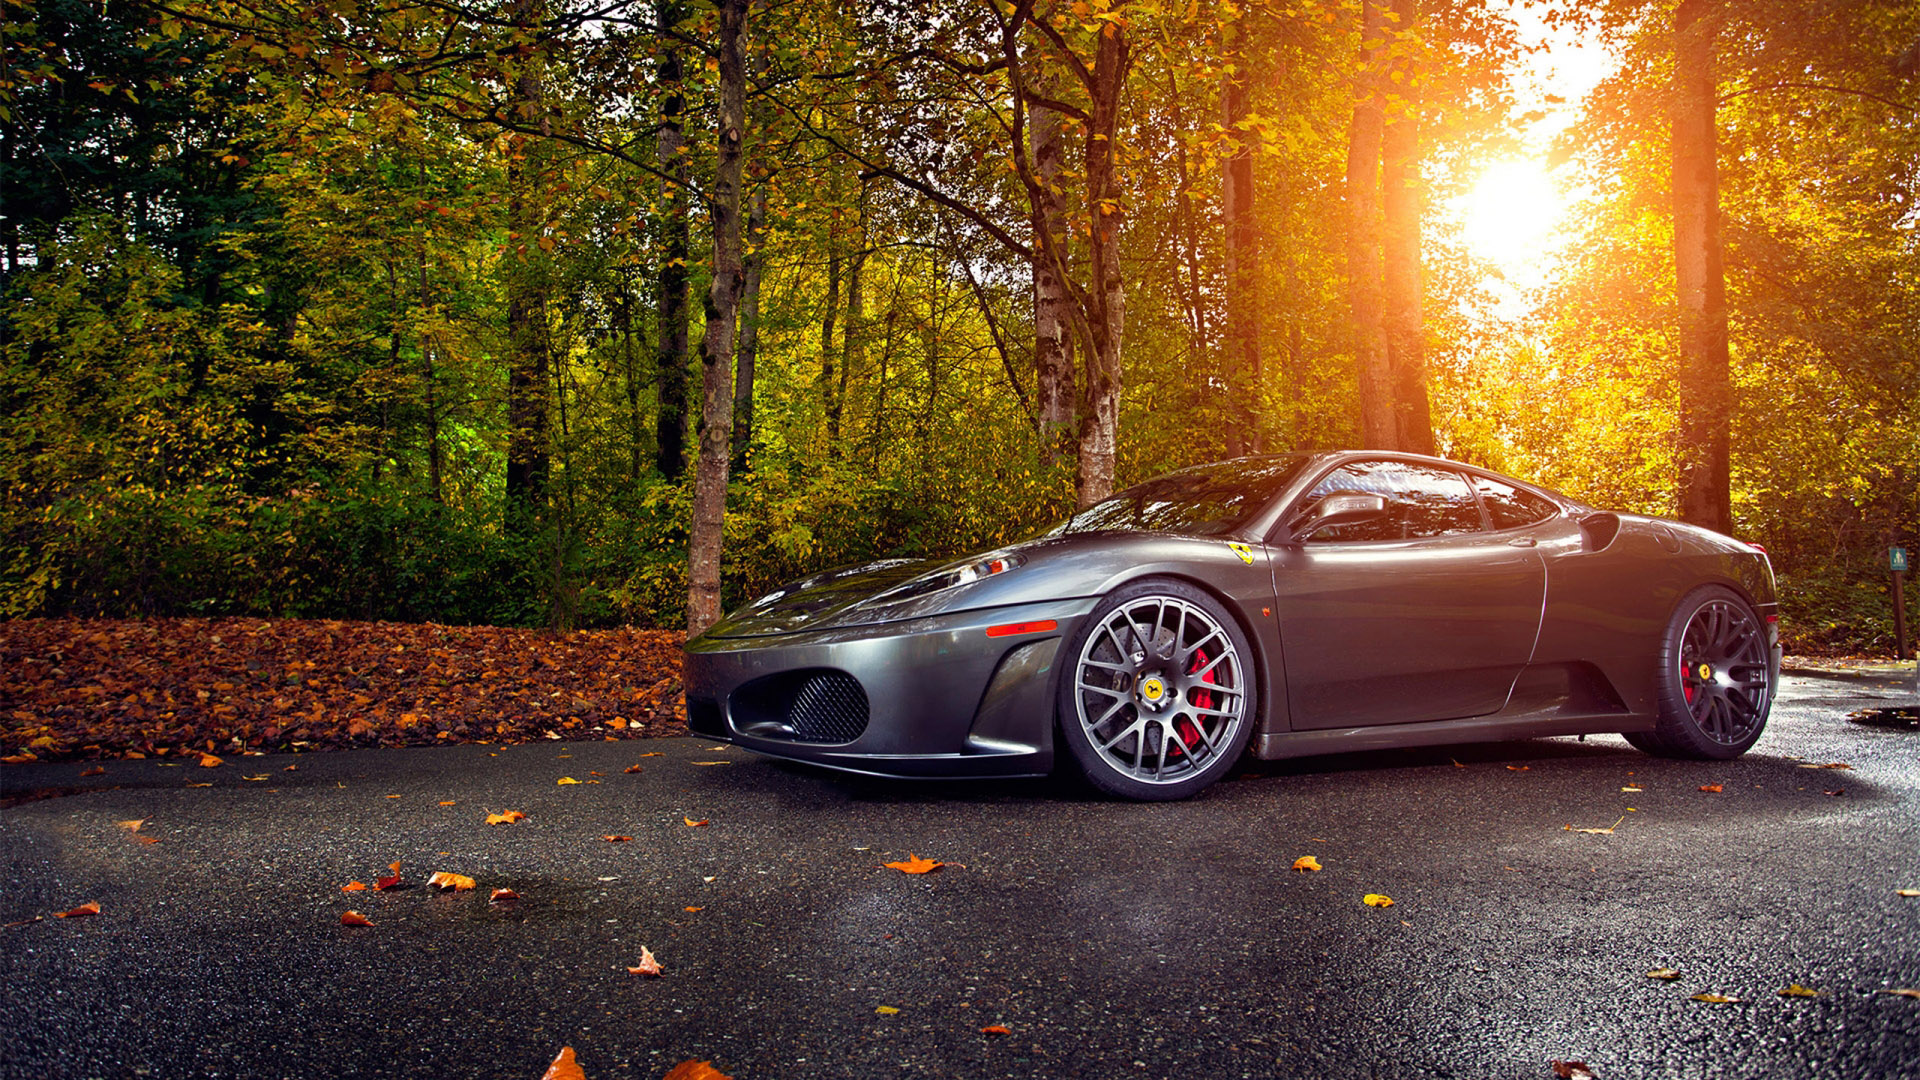 Bmw Sports Cars Wallpapers Desktop Backgrounds Gorgeous Gray Ferrari On Road In The Forest